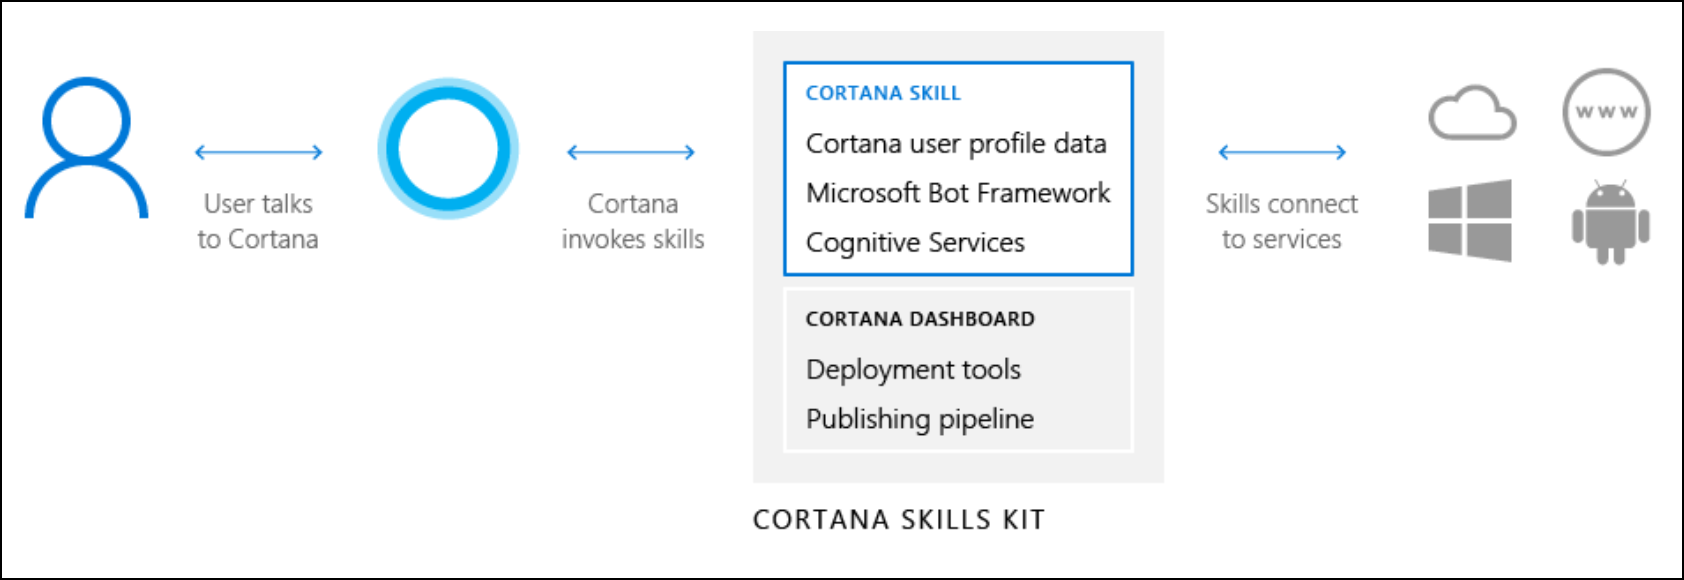 Overview of Cortana Skills - Cortana skills design and development